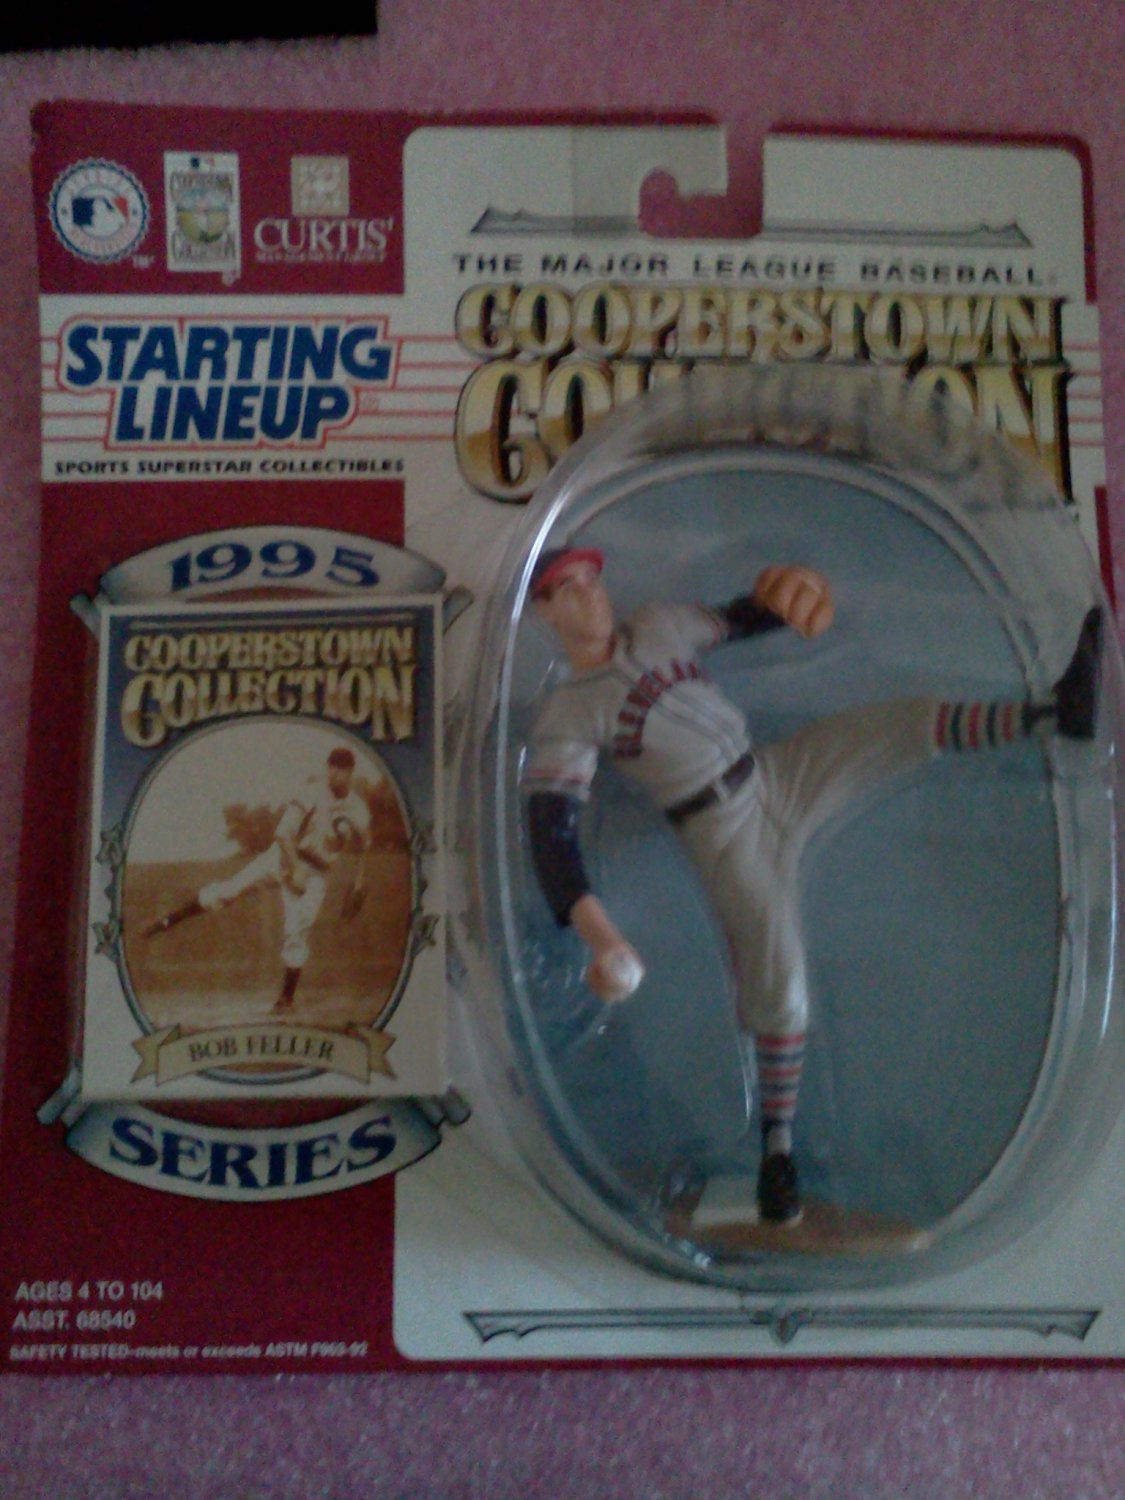 New Starting Lineup MLB Cooperstown Collection 1995 Series Bob Feller